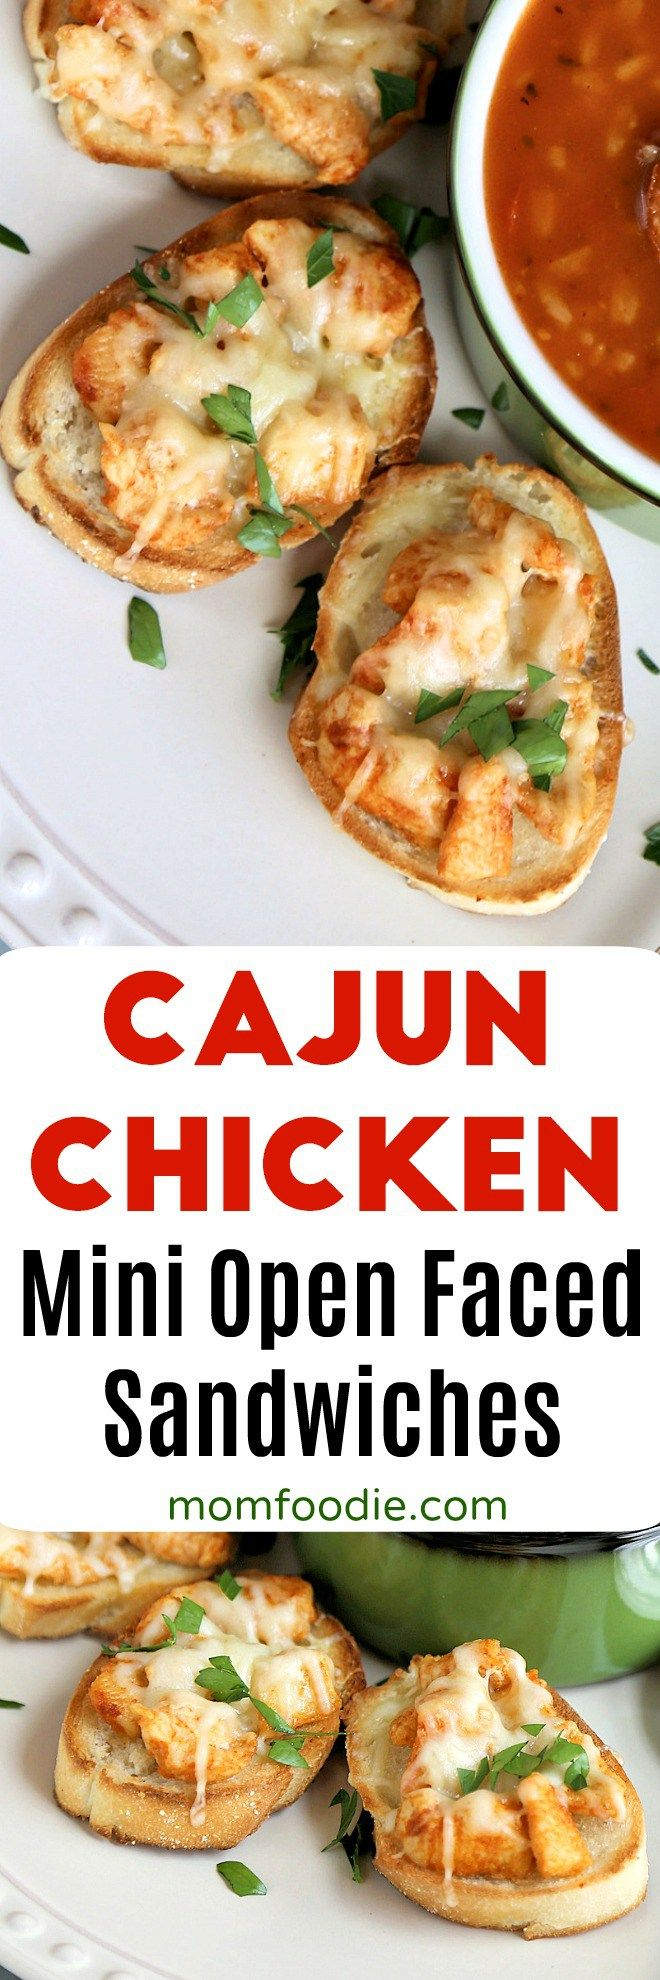 Cajun Chicken Appetizers - Mini Open Faced Sandwiches #partyfood #appetizers #footballfood #chicken #Cajun